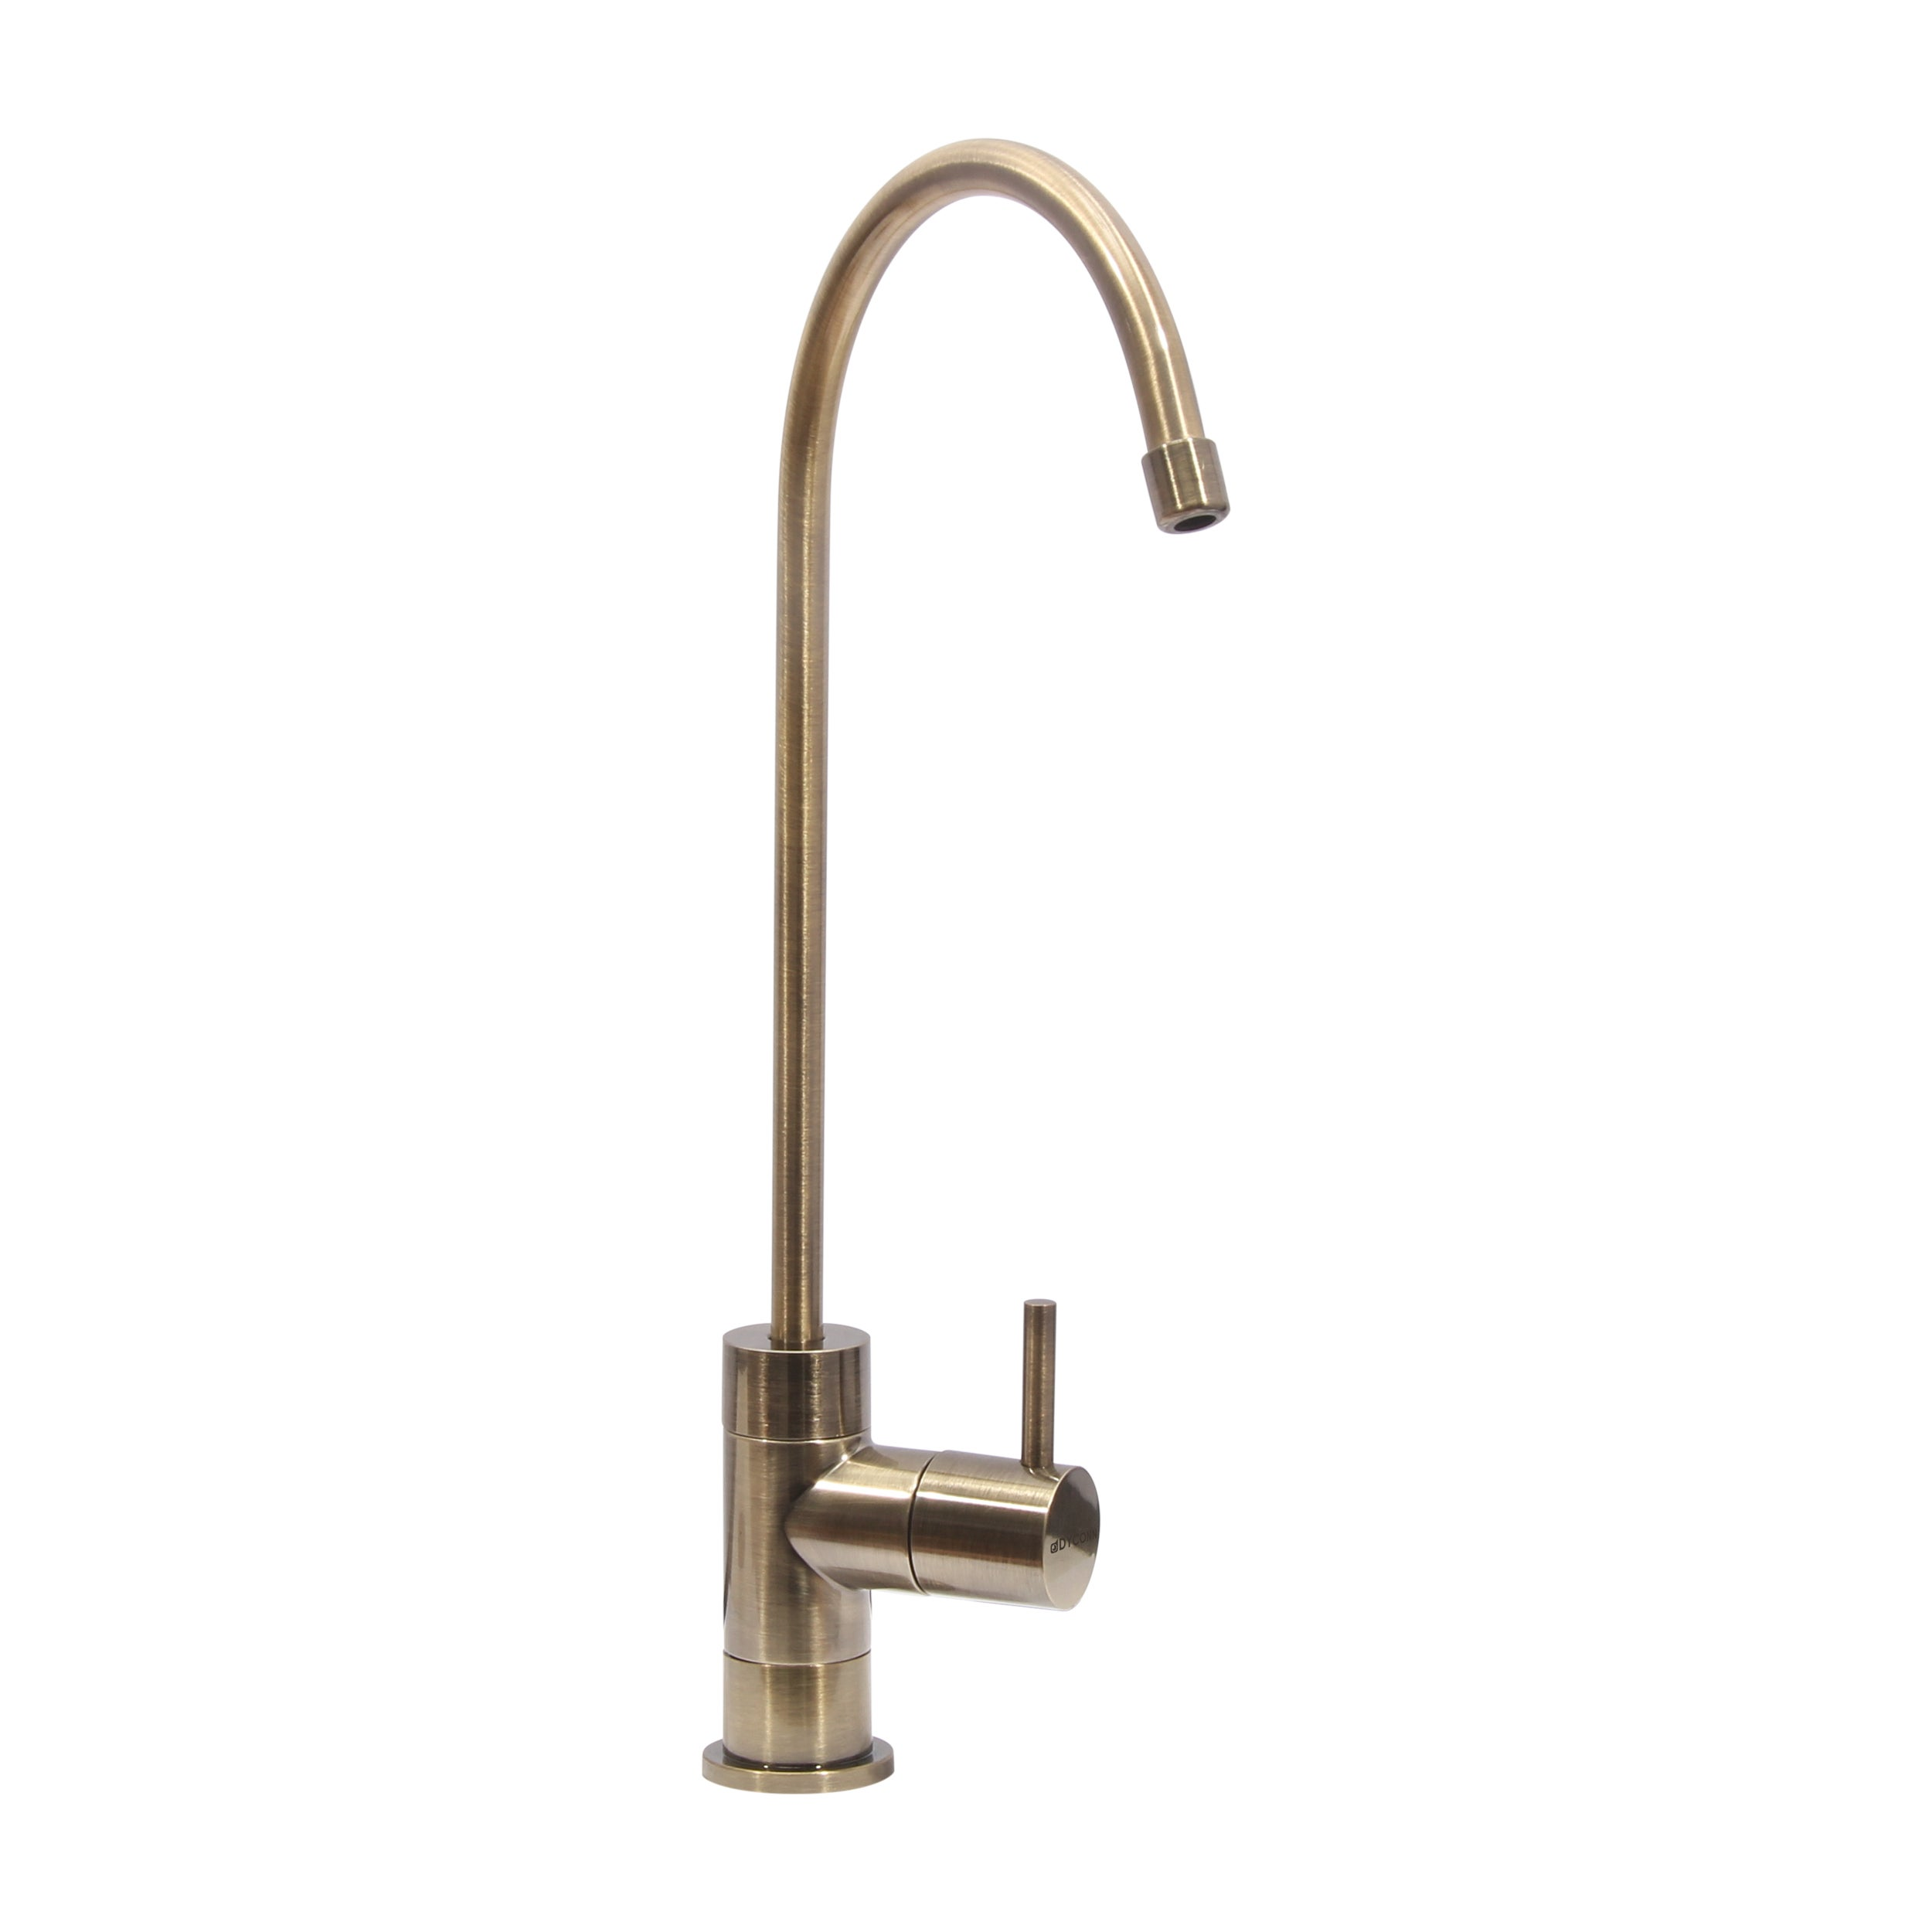 water faucet everpure reverse image brushed faucets drinking osmosis designer nickel